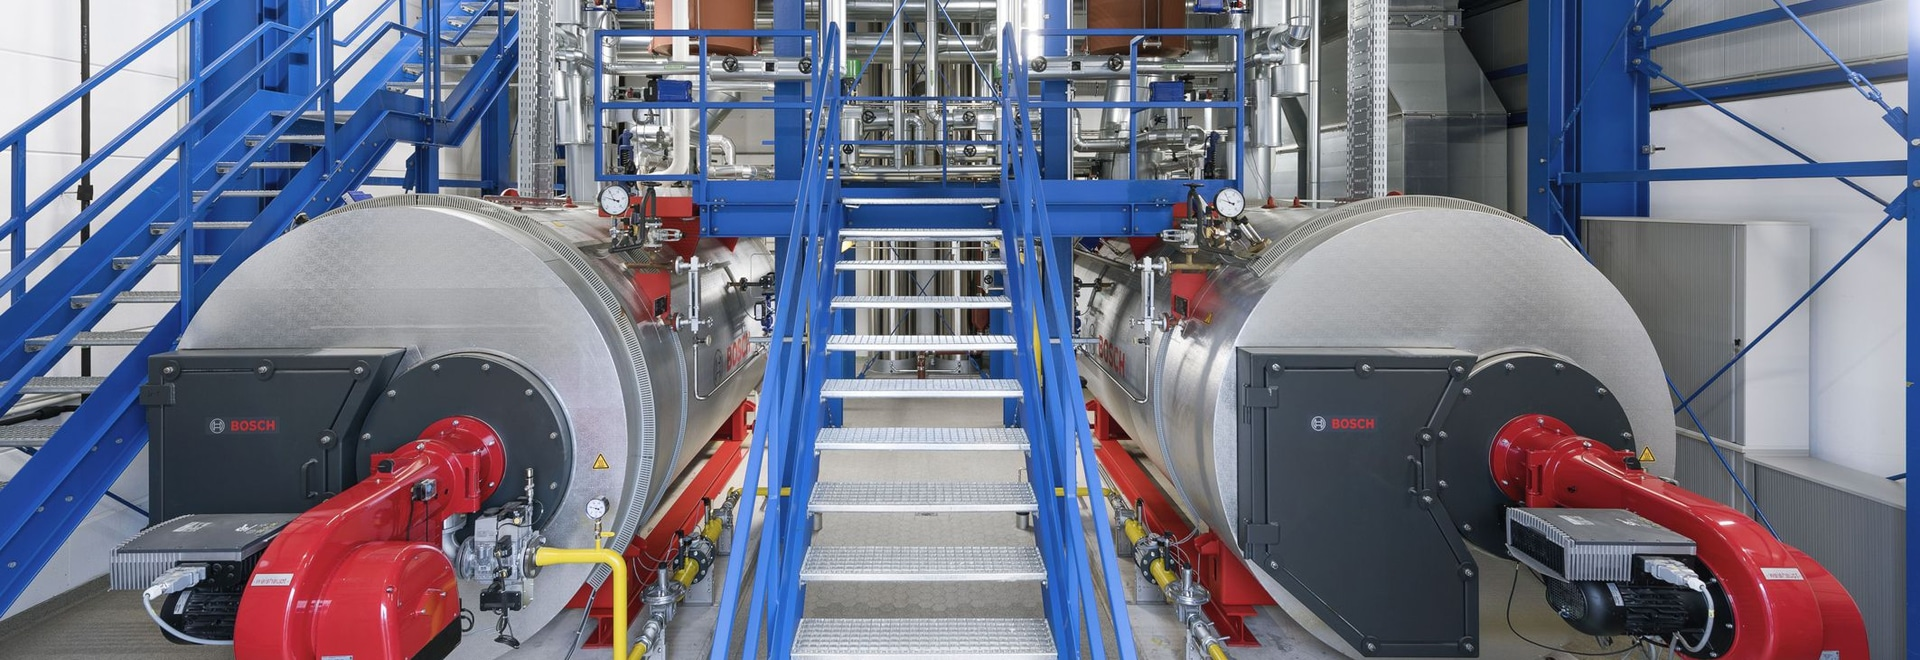 New Bosch boiler system for herbal medicines from Bionorica